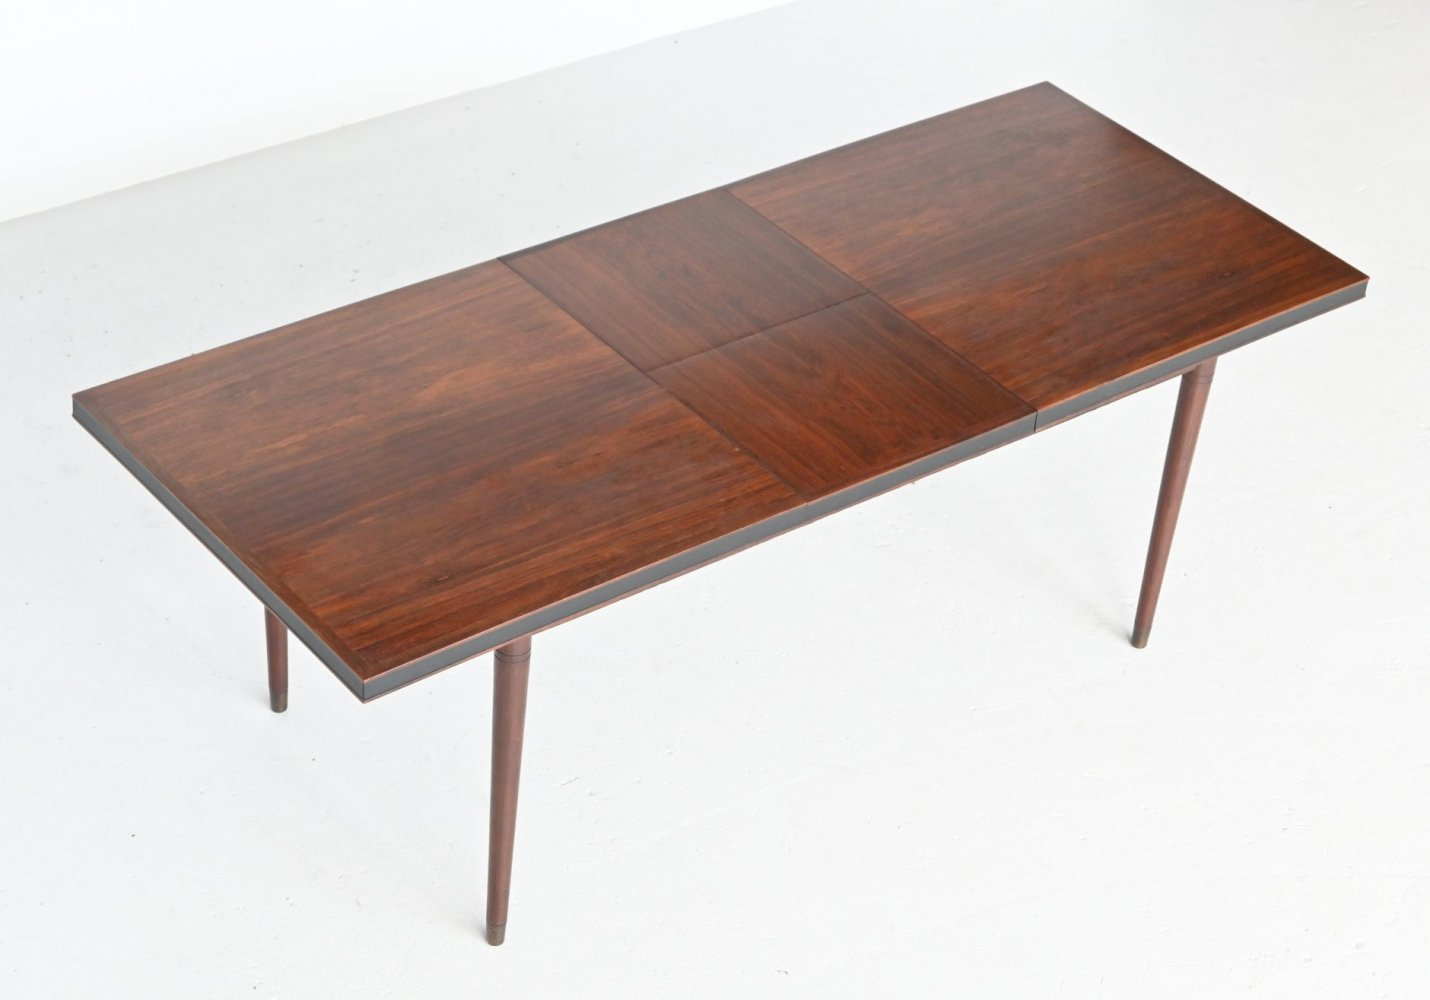 Unusual extendable rosewood dining table, Denmark 1960